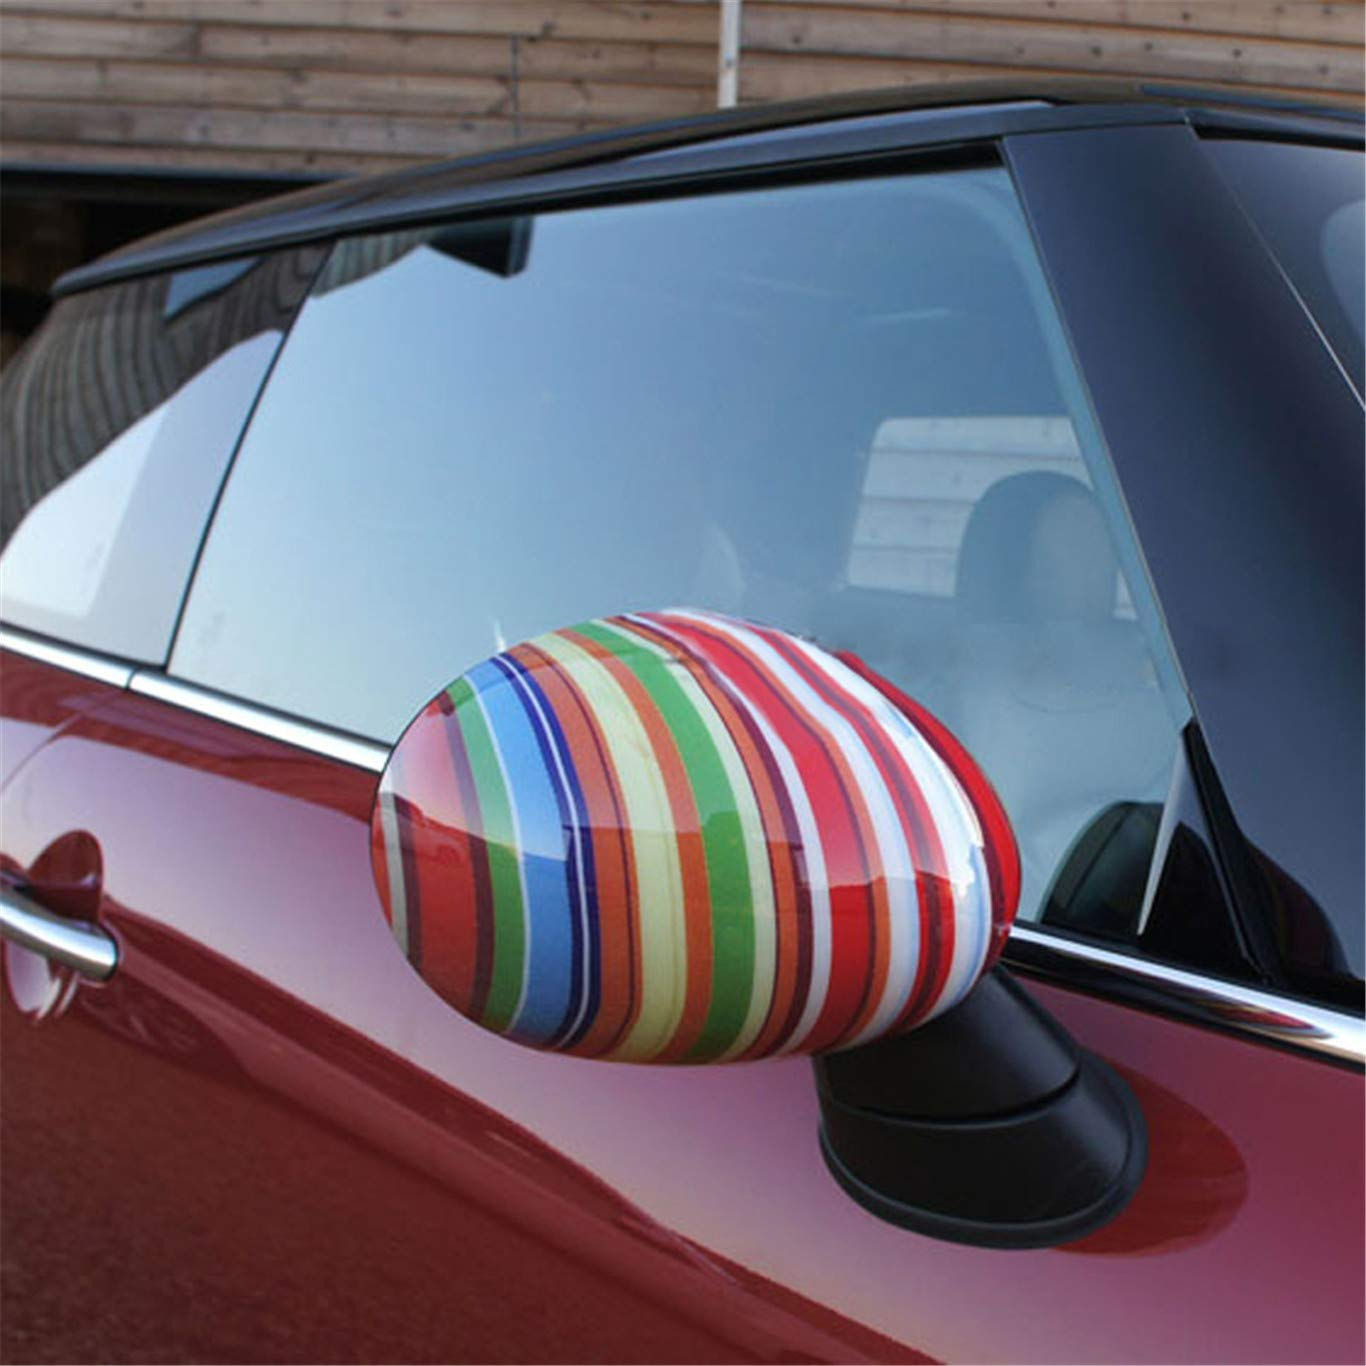 HDX Union Jack John Cooper Works ABS Cover Trim Cap for Mini Cooper R55 Clubman R56 Hatchback R57 Covertible R58 Coupe R59 Roadster R60 Countryman R61 Paceman Non Power Folding Mirror, Checkered